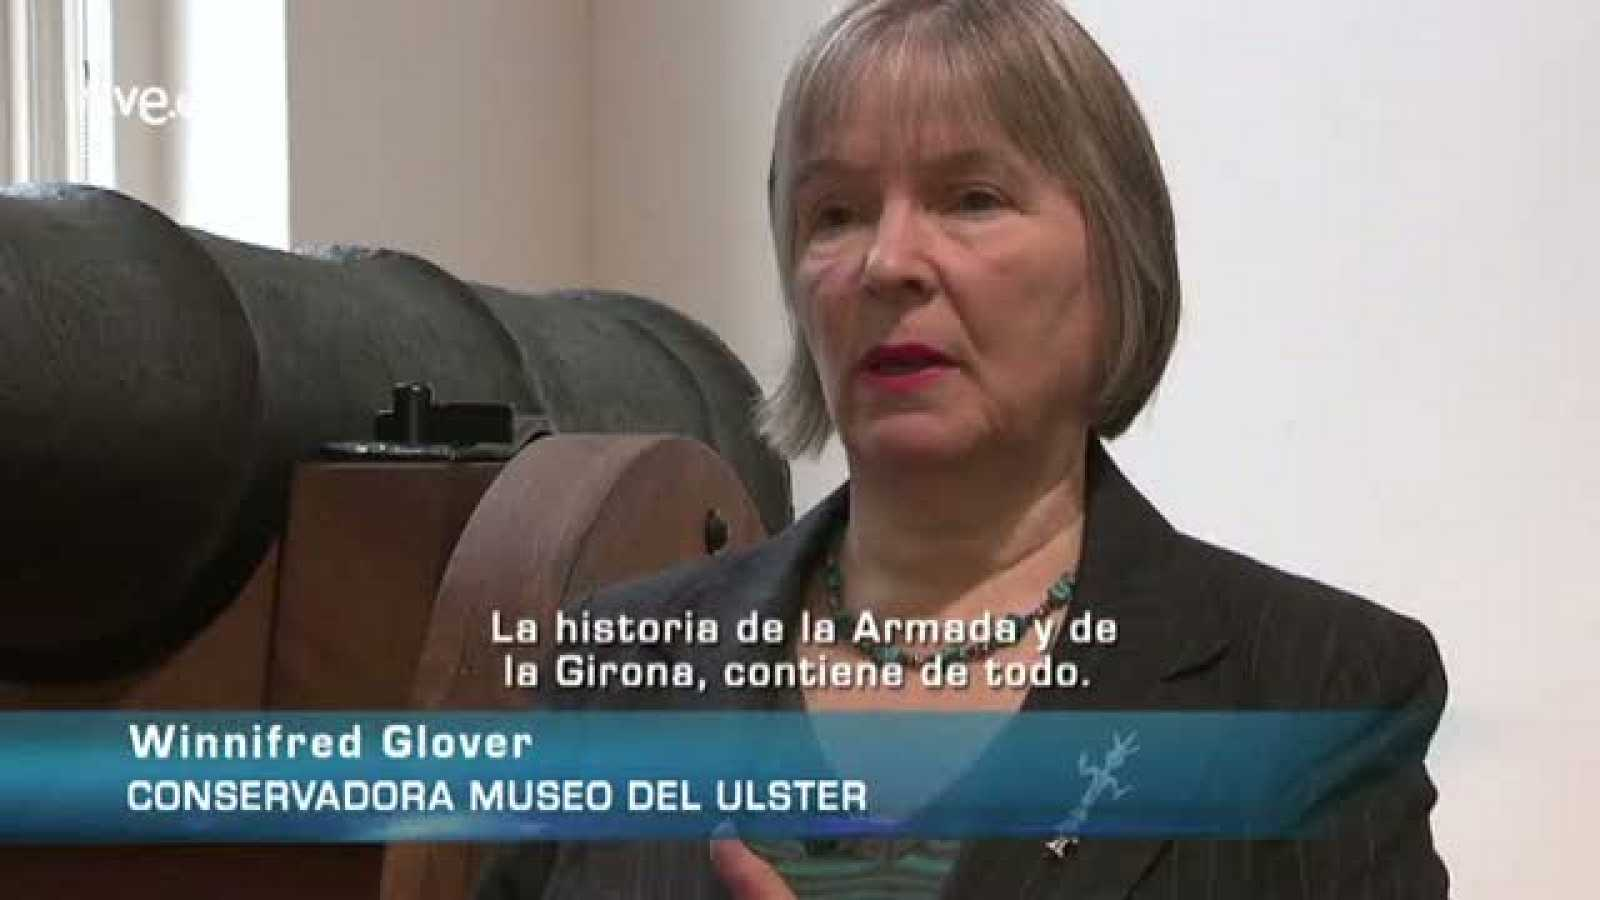 Crónicas - Winifred Glover